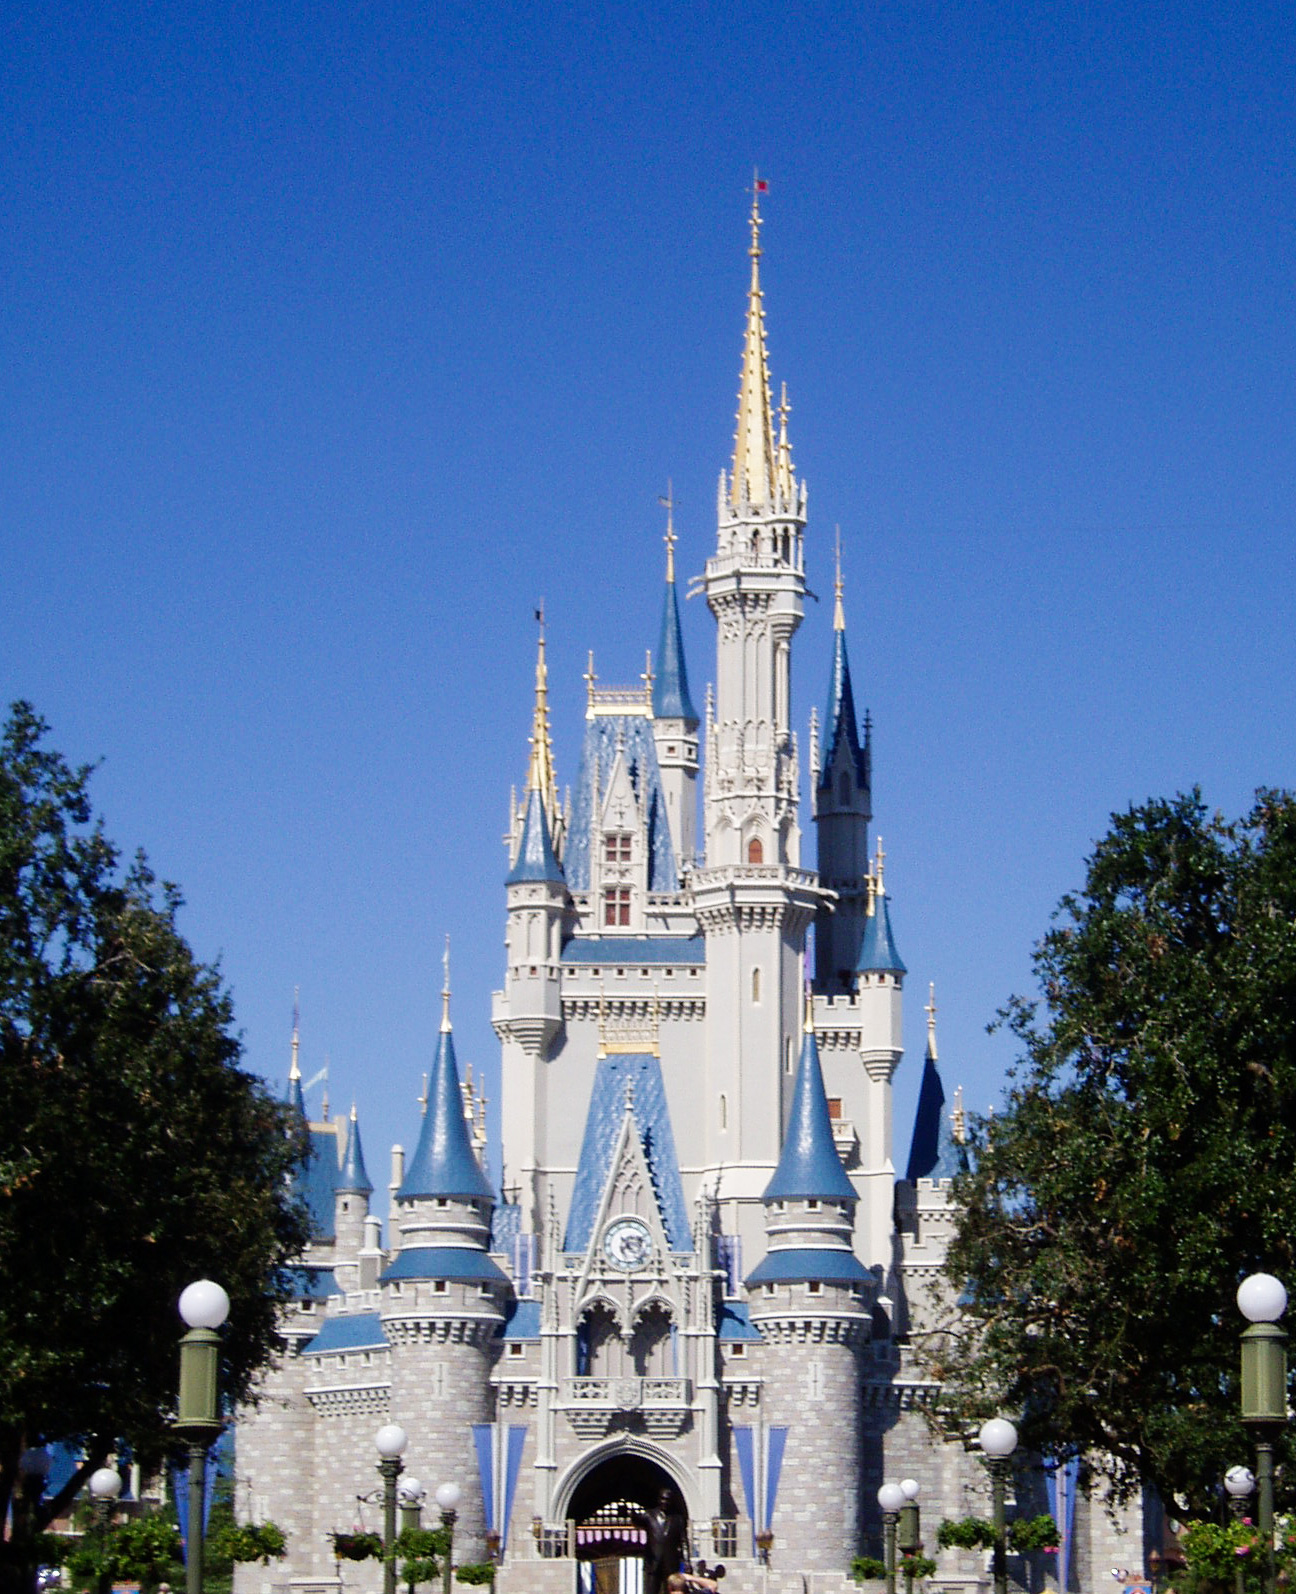 20 Tips to get the most out of Walt Disney World